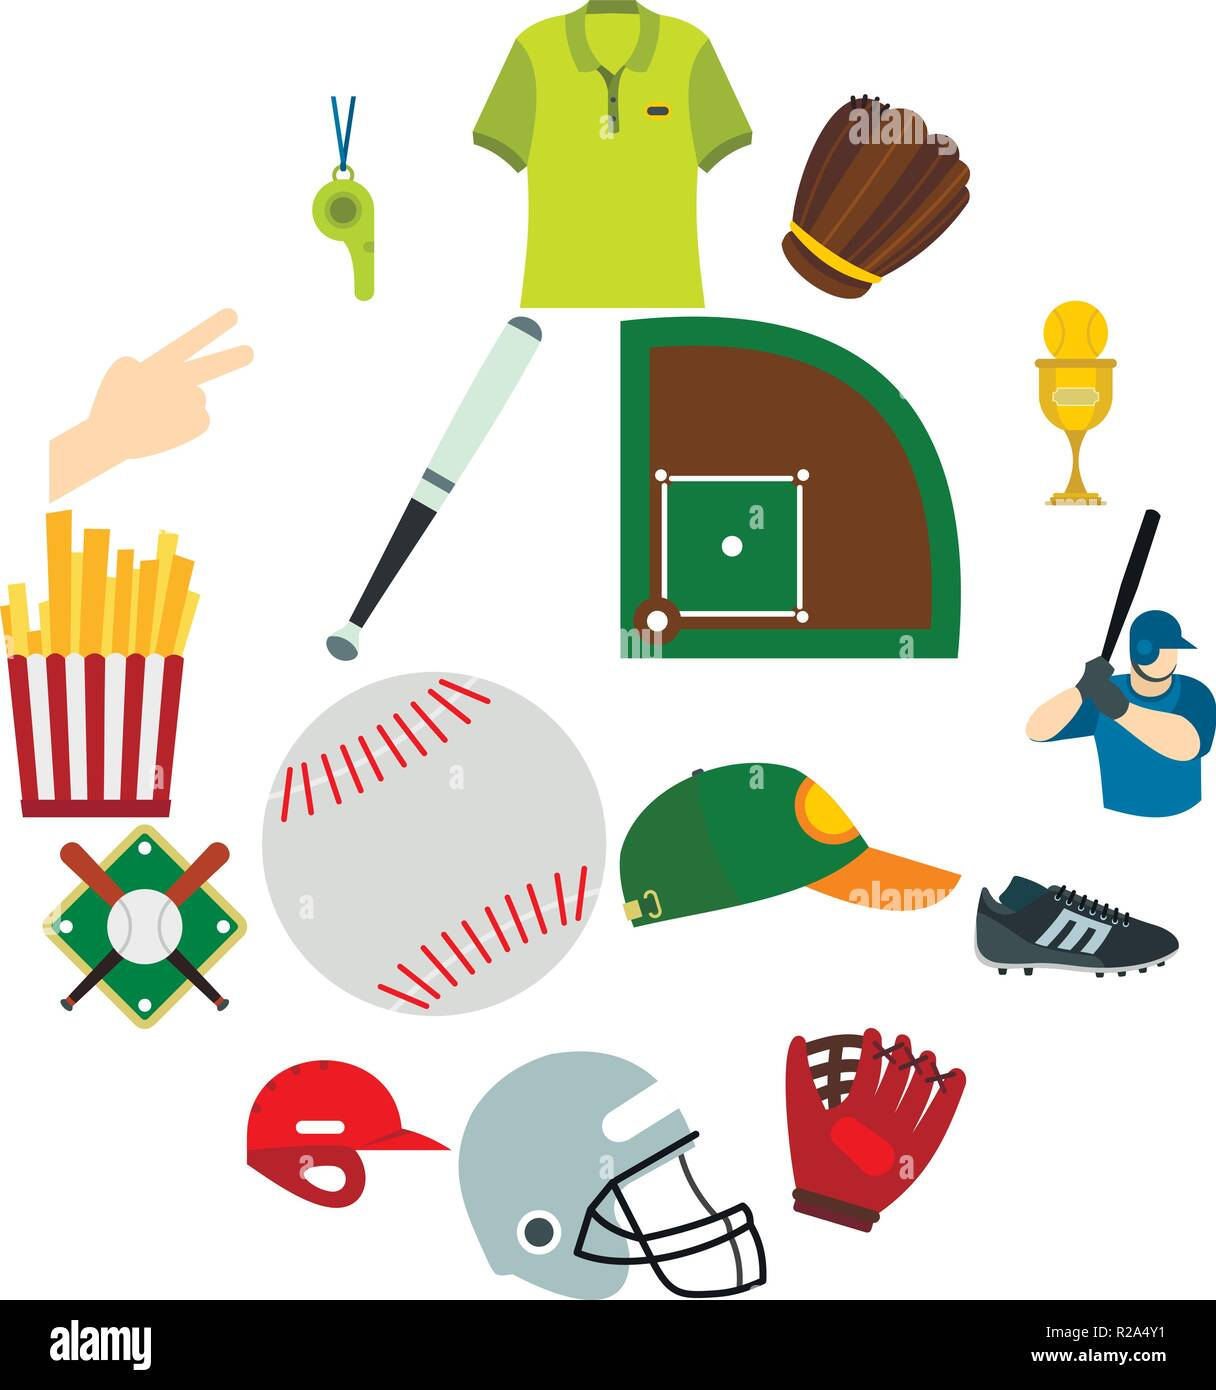 American football flat icons for web and mobile devices - Stock Vector